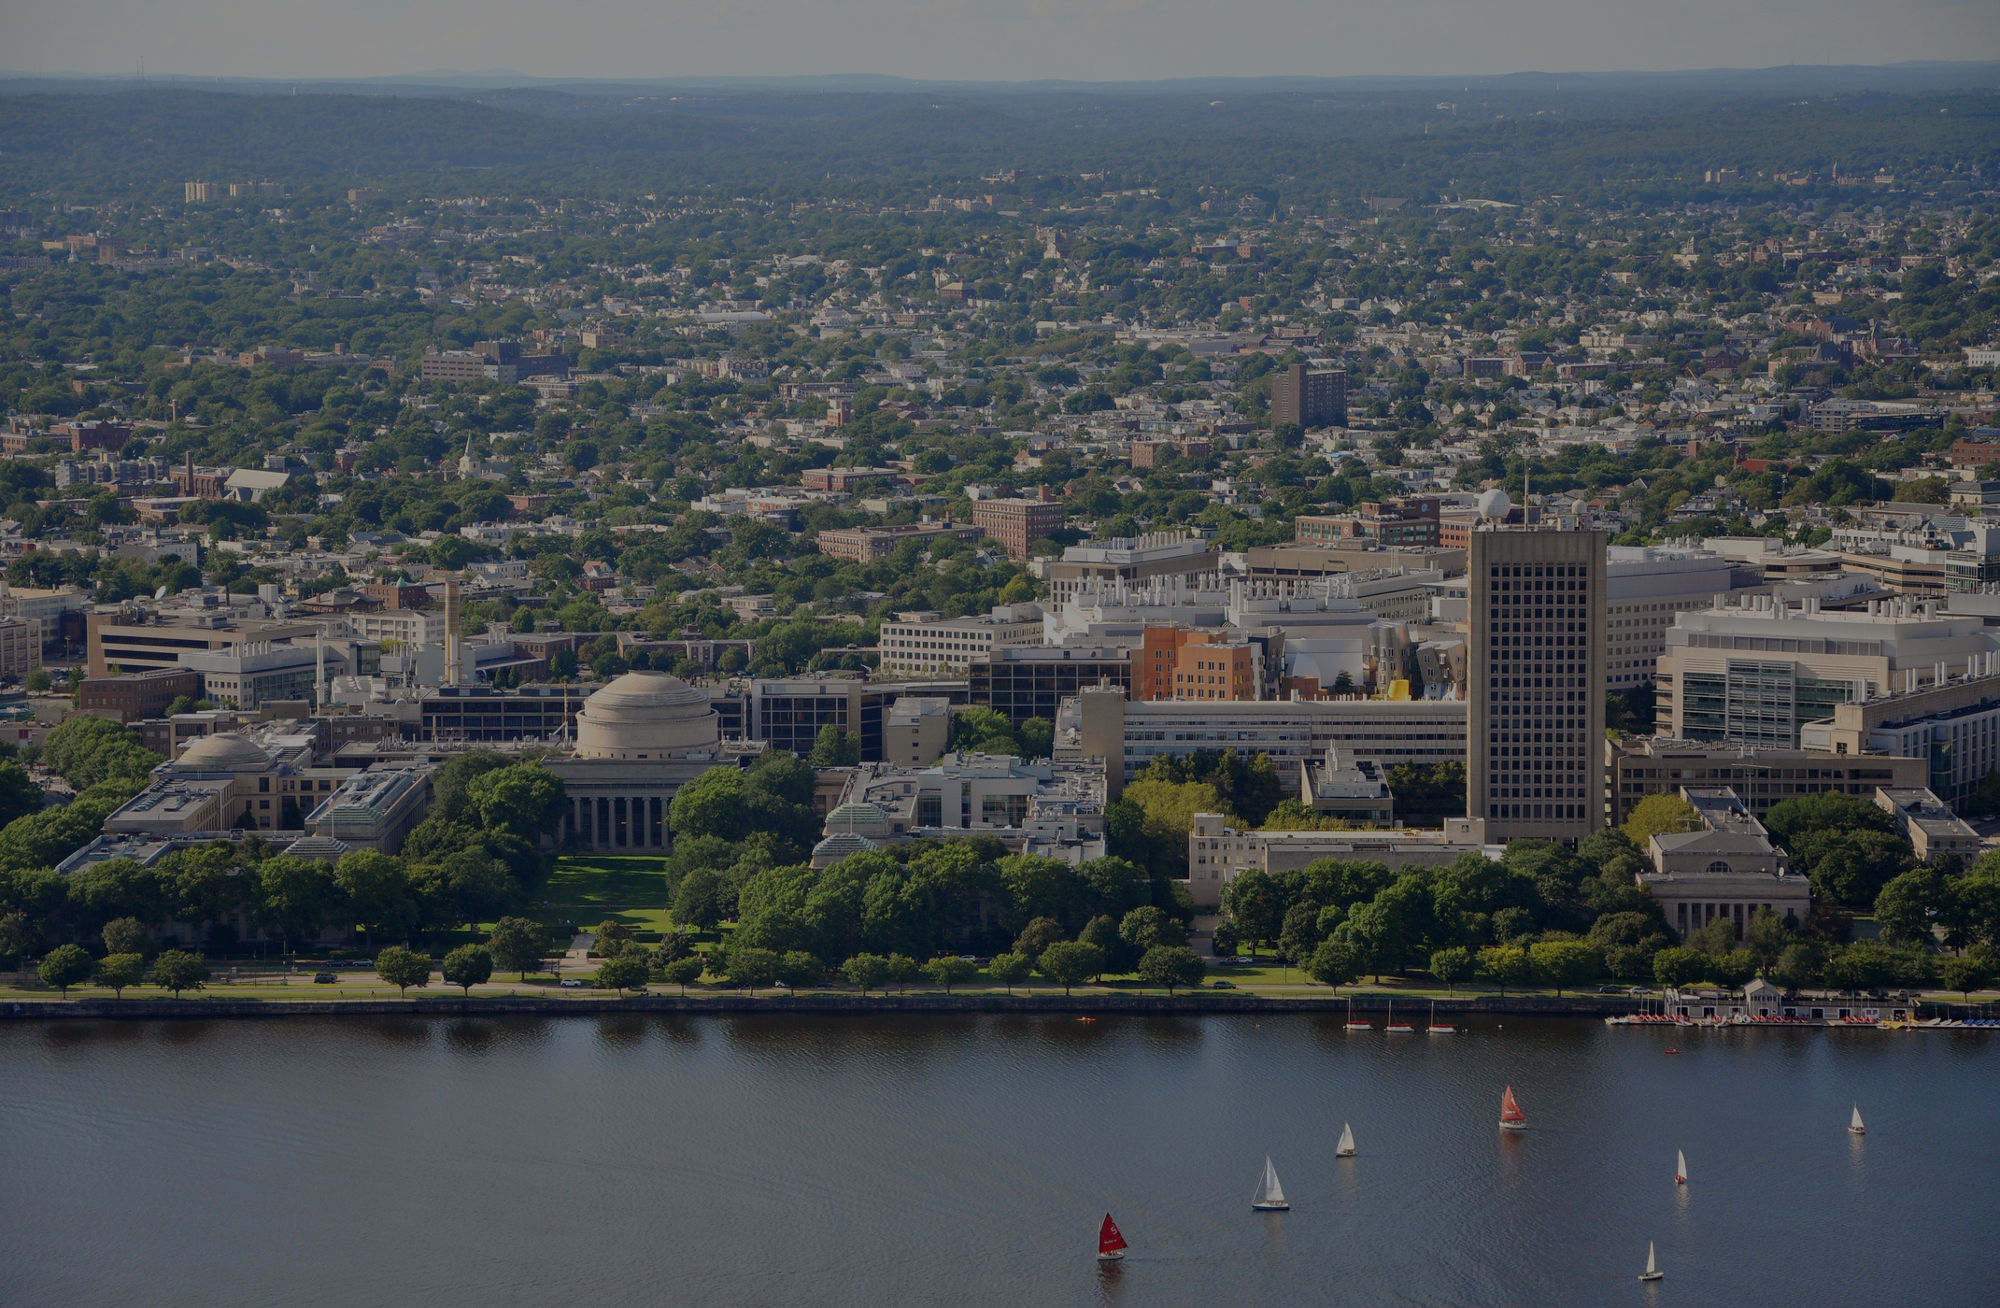 Aerial view of Massachusetts Institute of Technology (MIT) in Cambridge, MA. Recruiting research volunteers in Boston, MA and beyond. Serving MIT faculty, staff, and graduate students seeking to conduct behavioral research.